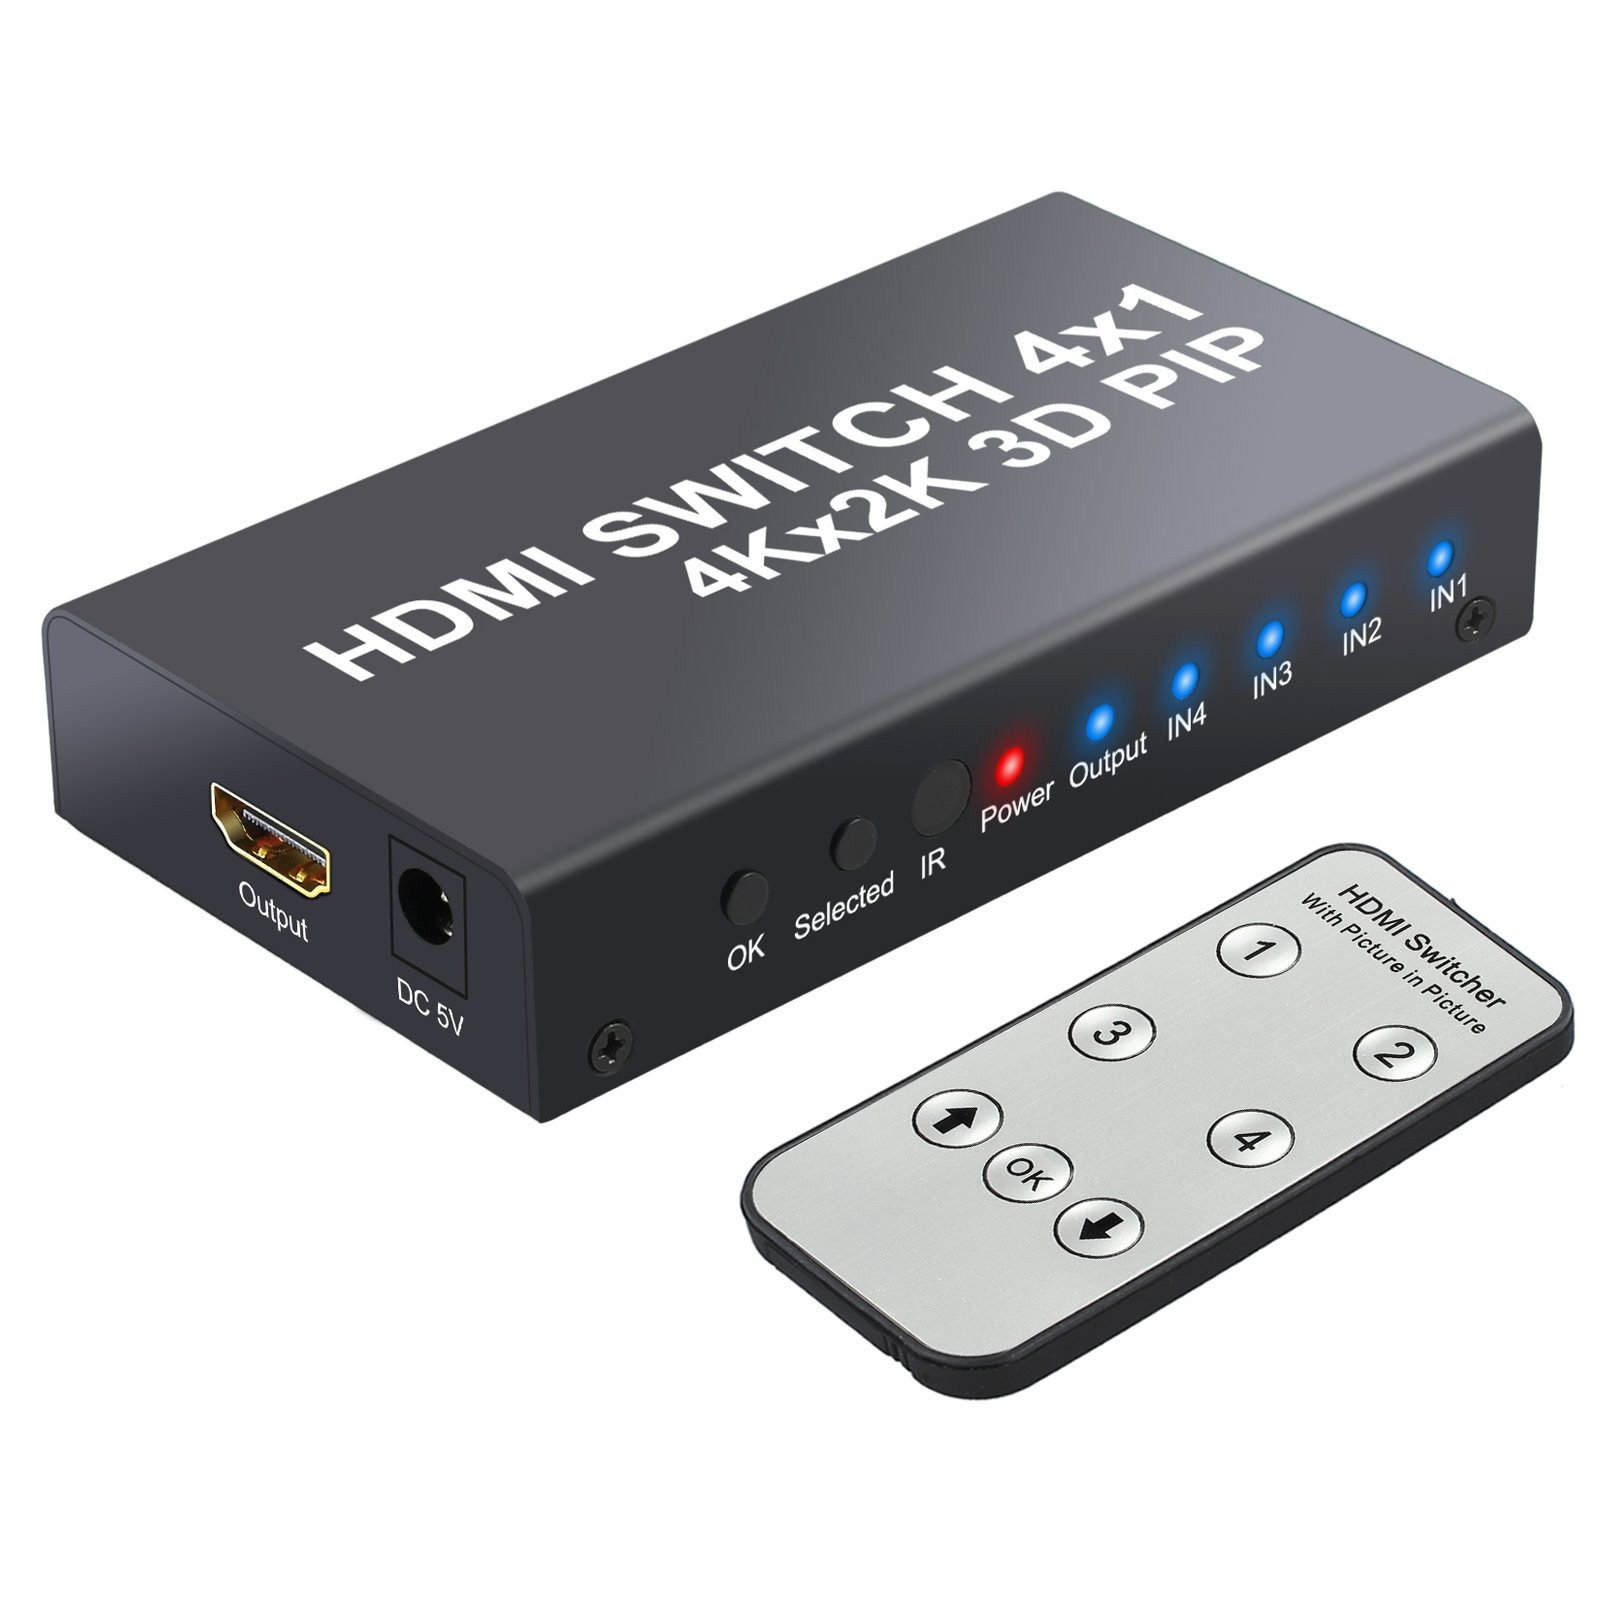 HDMI Switch with PIP LiNKFOR 4 Port HDMI Switcher Hub 4K 2160P HDMI High Speed Switcher With IR Remote Control and Power Adapter for 4K HDTV Monitor DVD Players PC Projector SKY Box PS3 PS4 Xbox